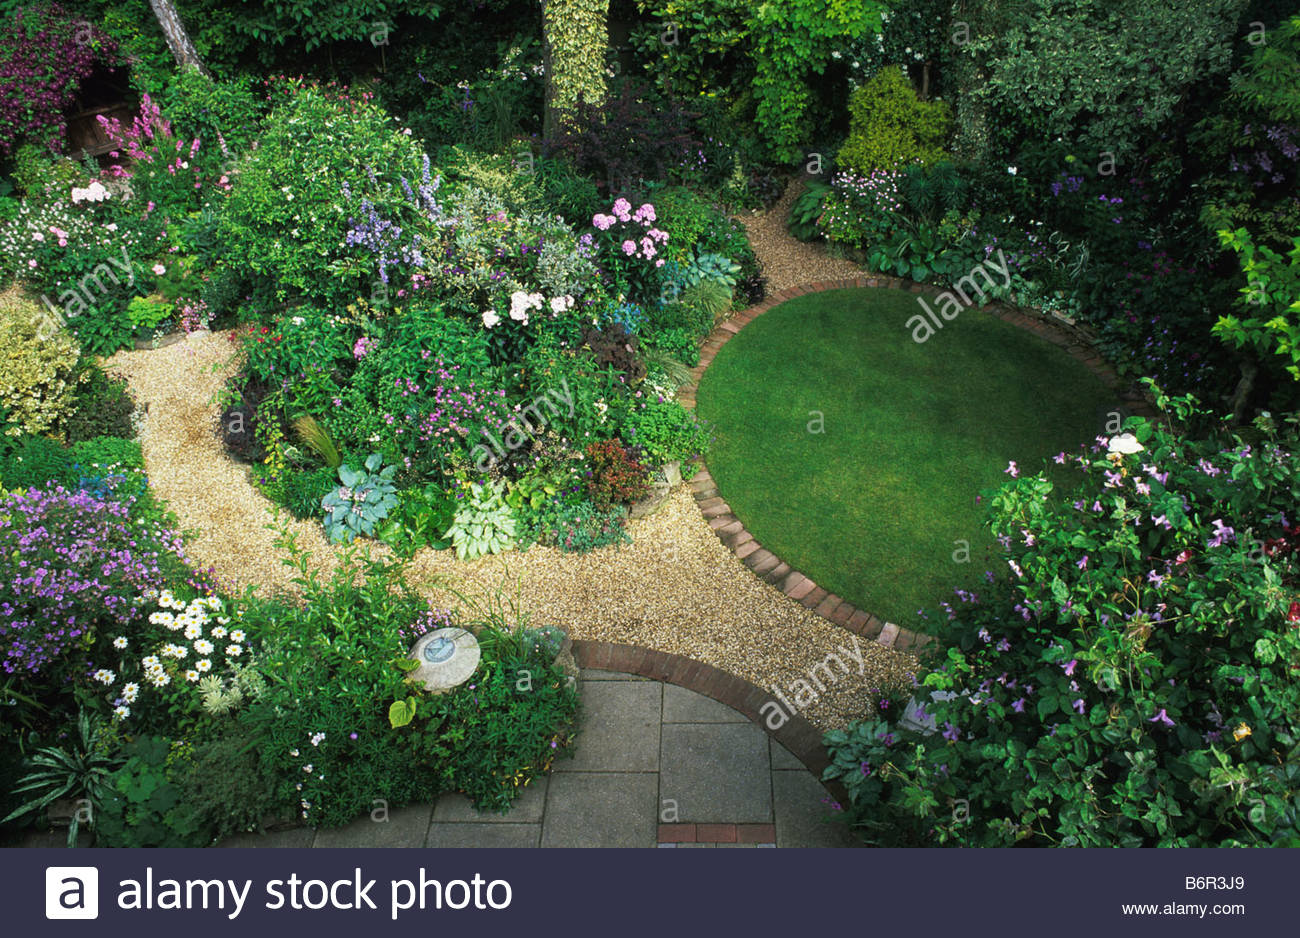 ladywood hampshire small semi shady garden with two circular design elements lawn and flower bed with